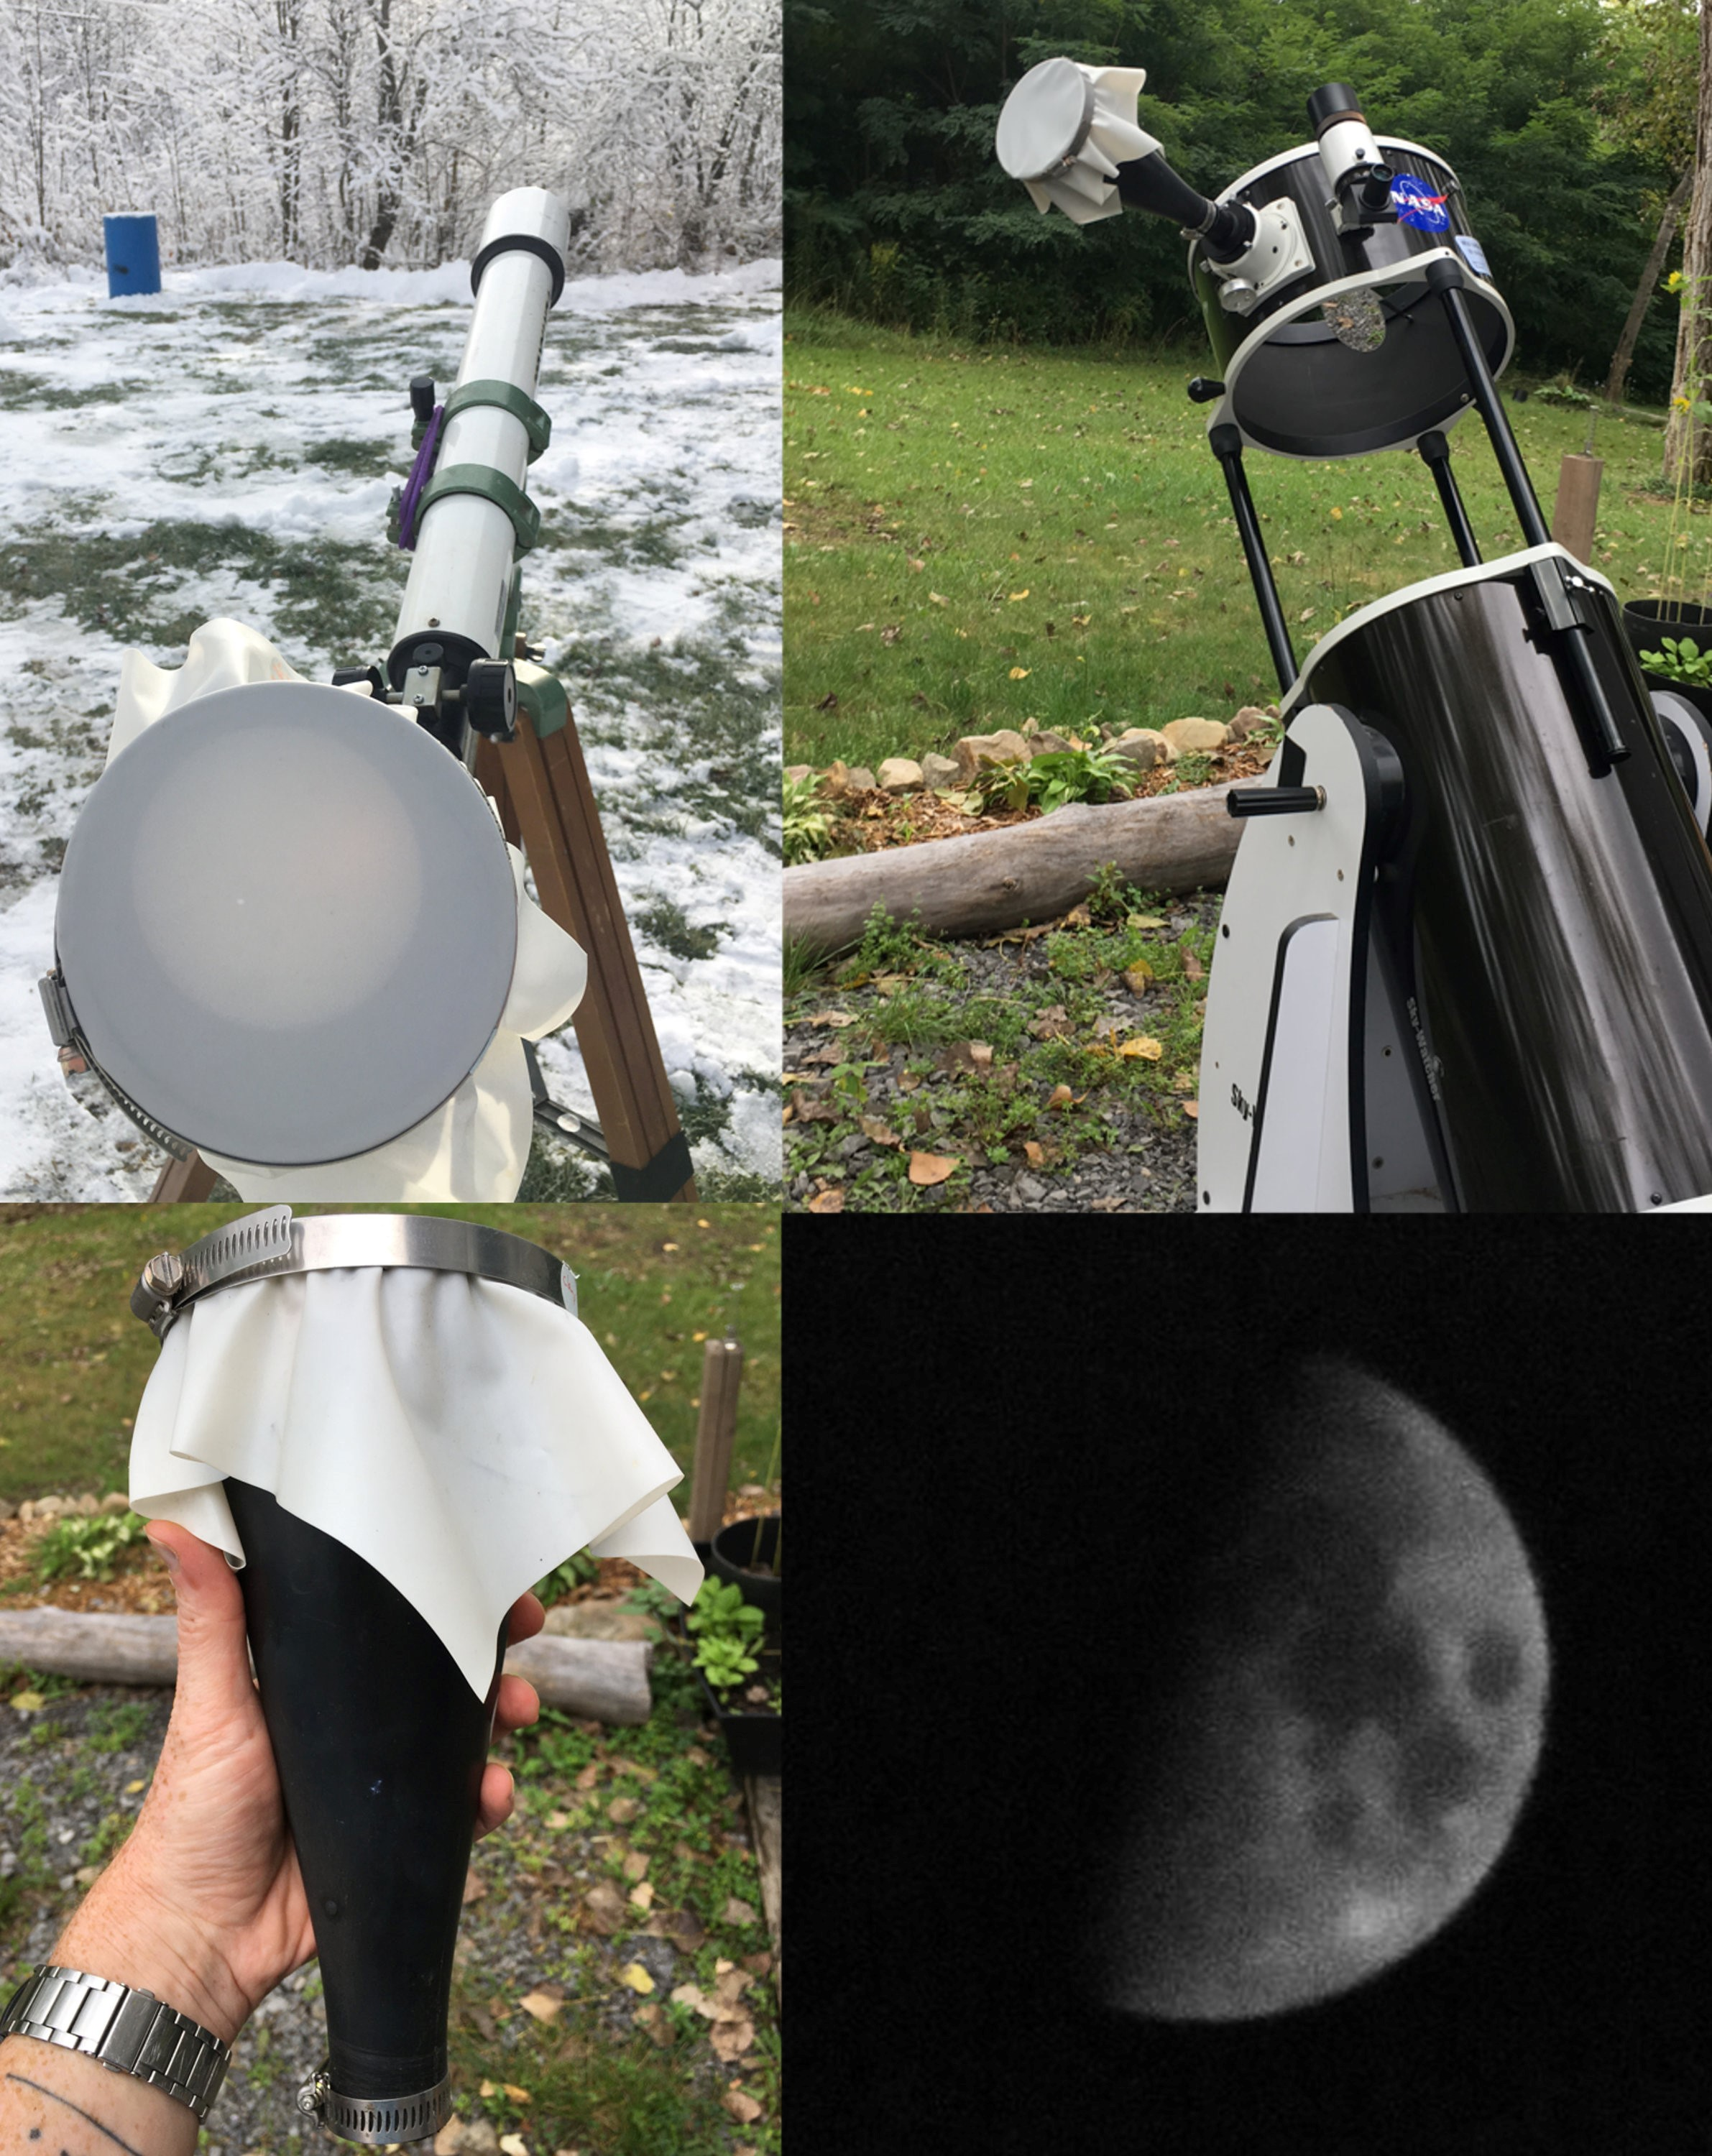 Four-photo mosaic, starting with the image of a hand holding a Sun Funnel in the bottom left; top left is a refractor telescope in the snow with a Sun Funnel showing the Sun; top right is a large Dobsonian telescope with a Sun Funnel; bottom right is a ghostly image of the Moon projected onto a Sun Funnel.